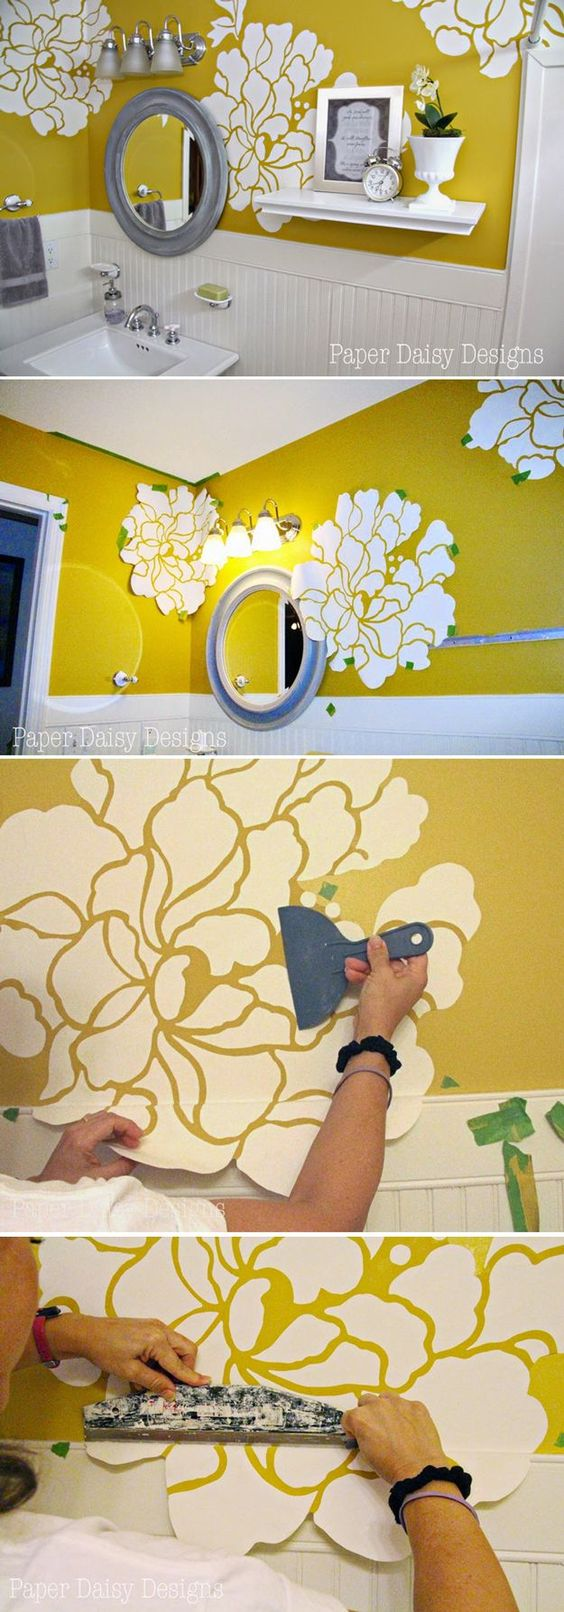 Diy Anthropologie Wall Decor : Anthropologie projects design over sized and crafts